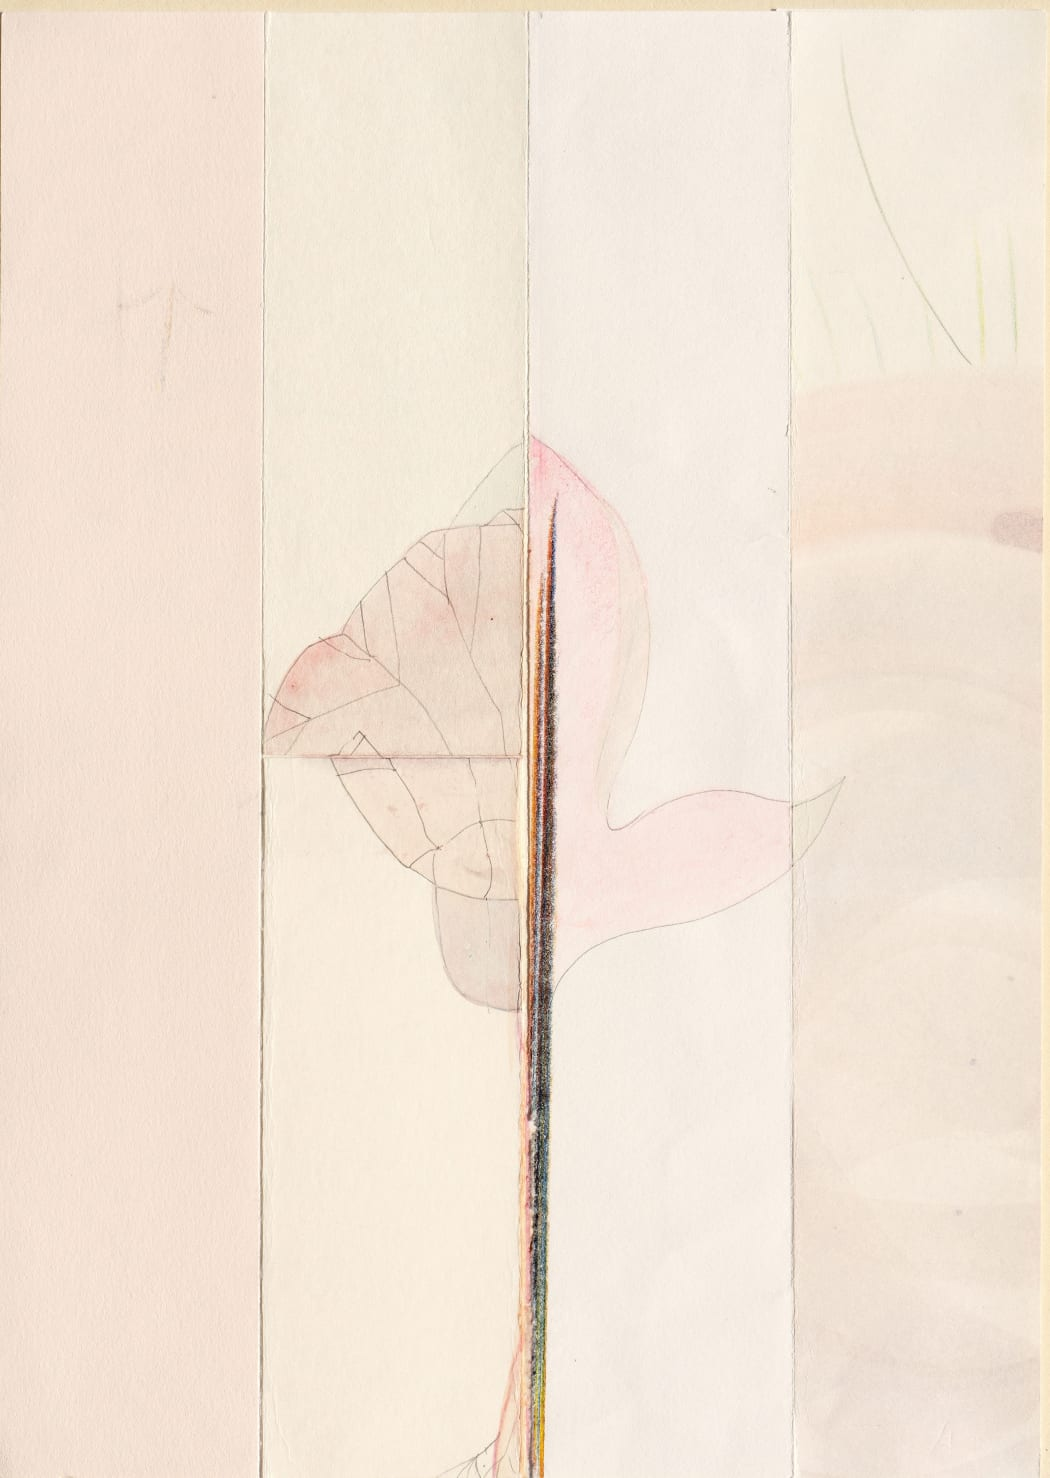 Season: Fictional Plant 26, 2020, Pencil and watercolor on assorted paper, 29.7 x 21 cm, Signed and dated (Unframed).